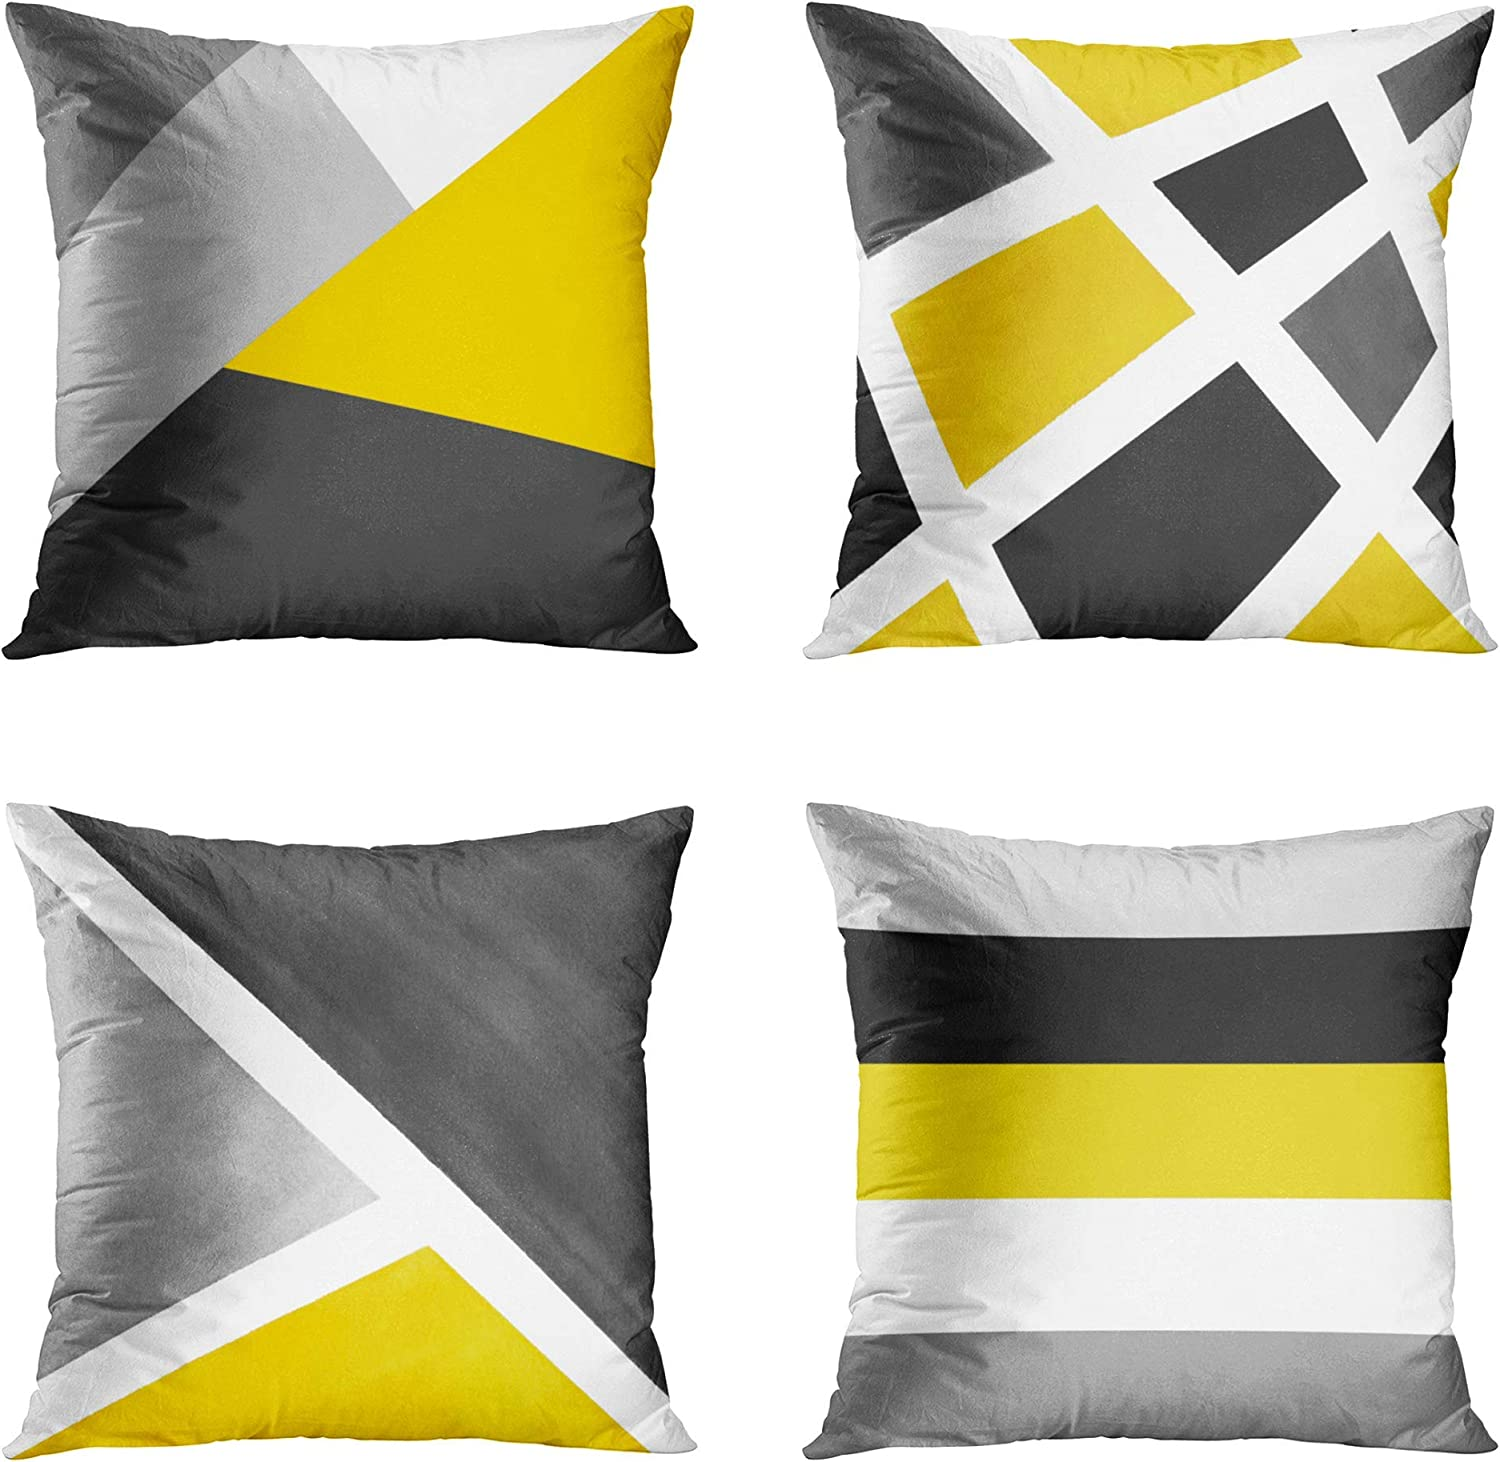 Emvency Set of 4 Throw Pillow Covers Modern Abstract Stripe Simple Geometric Acrylic Bold Decorative Pillow Cases Home Decor Square 18x18 Inches Pillowcases(Grey Yellow)